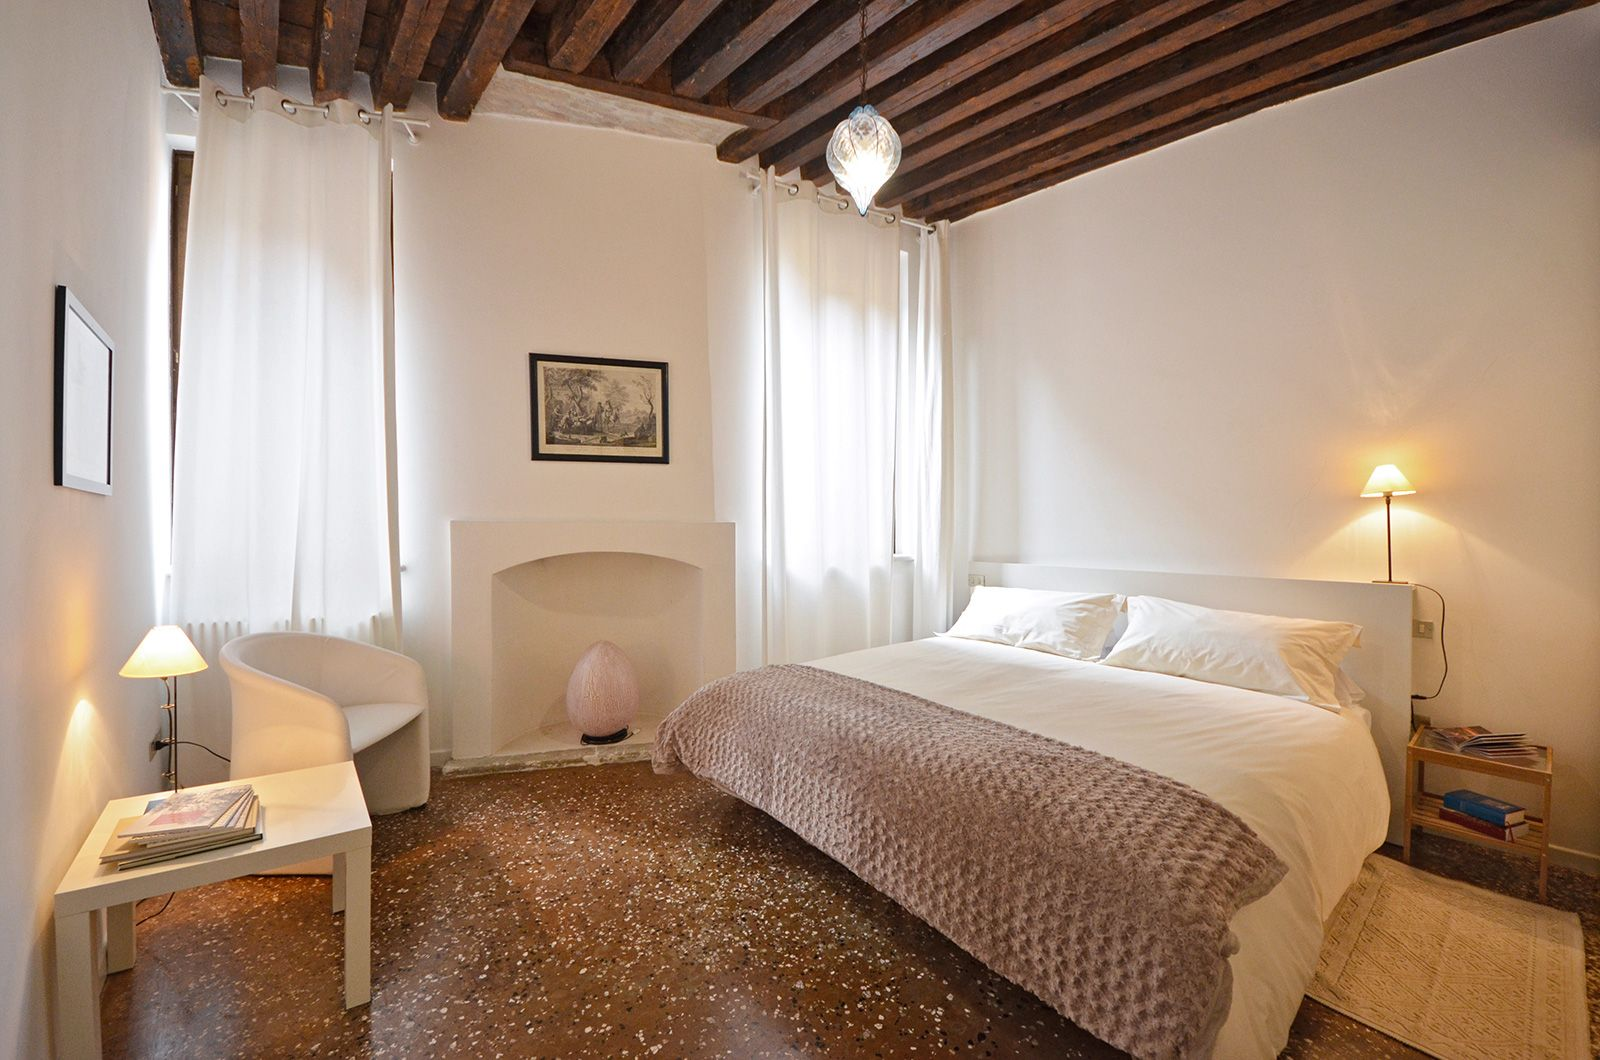 the second bedroom can be prepared both as double or twin, on request